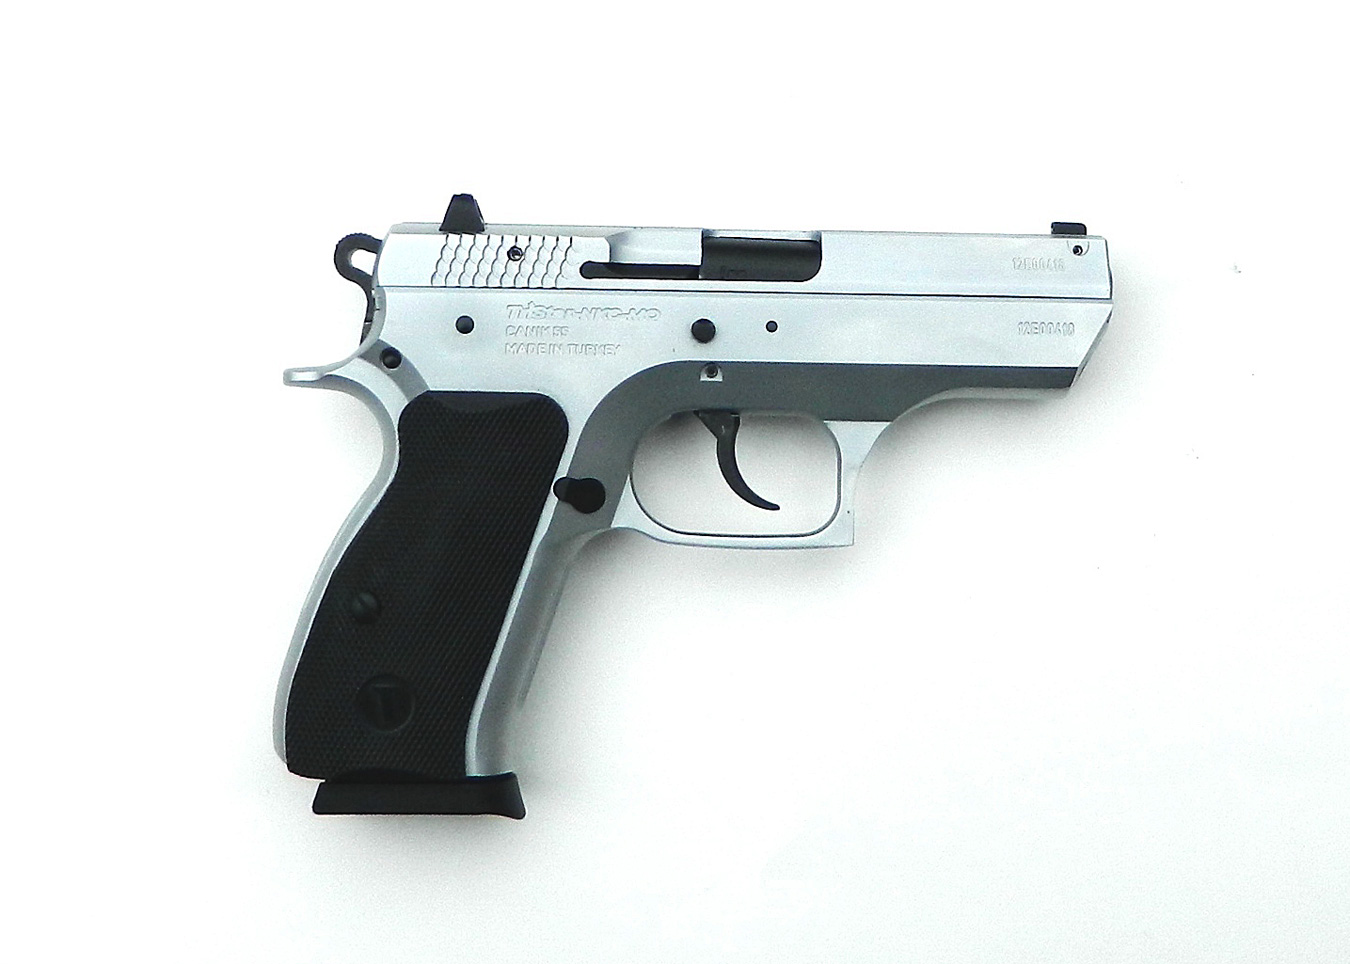 Canik C100 9mm pistol, right profile